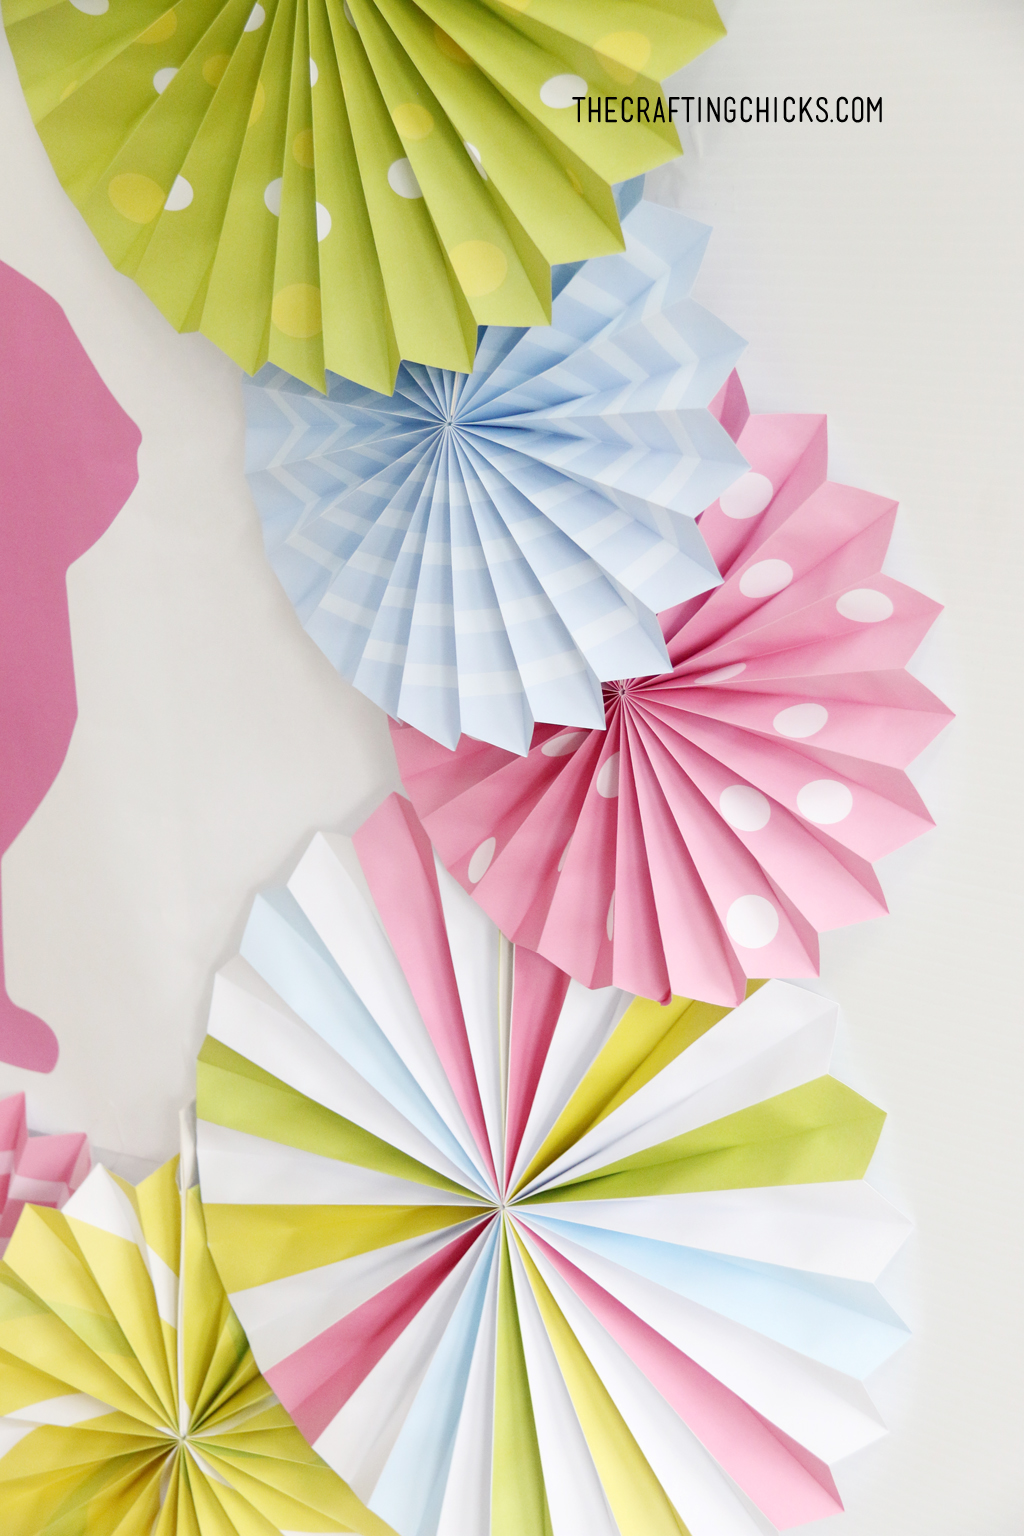 Bright colored decorative paper fans in bright green, pink, yellow and blue.